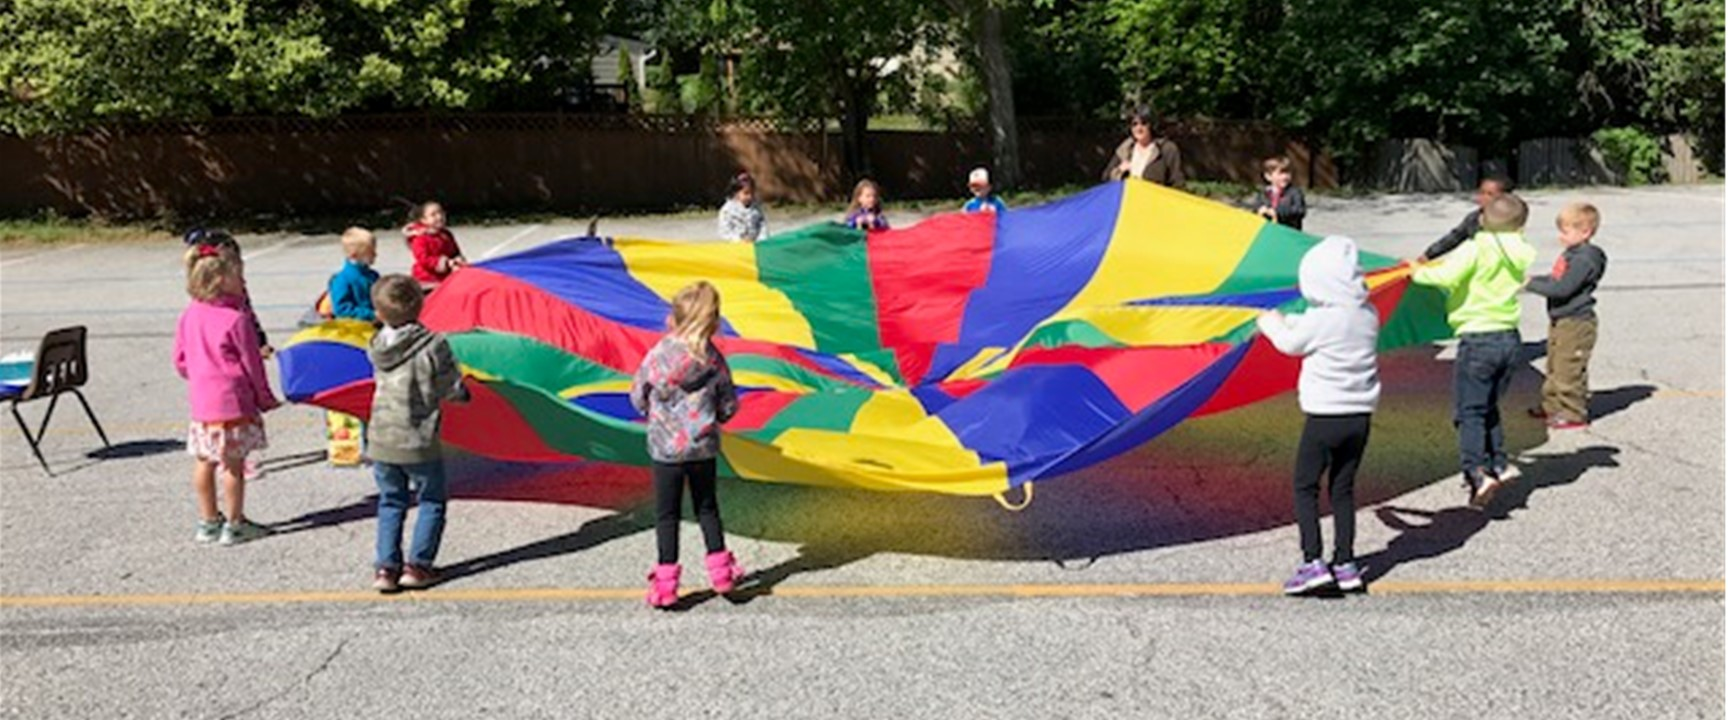 St Paul Lutheran School ECC Outdoor Learning Fun - Children in Circle with Colorful Parachute game